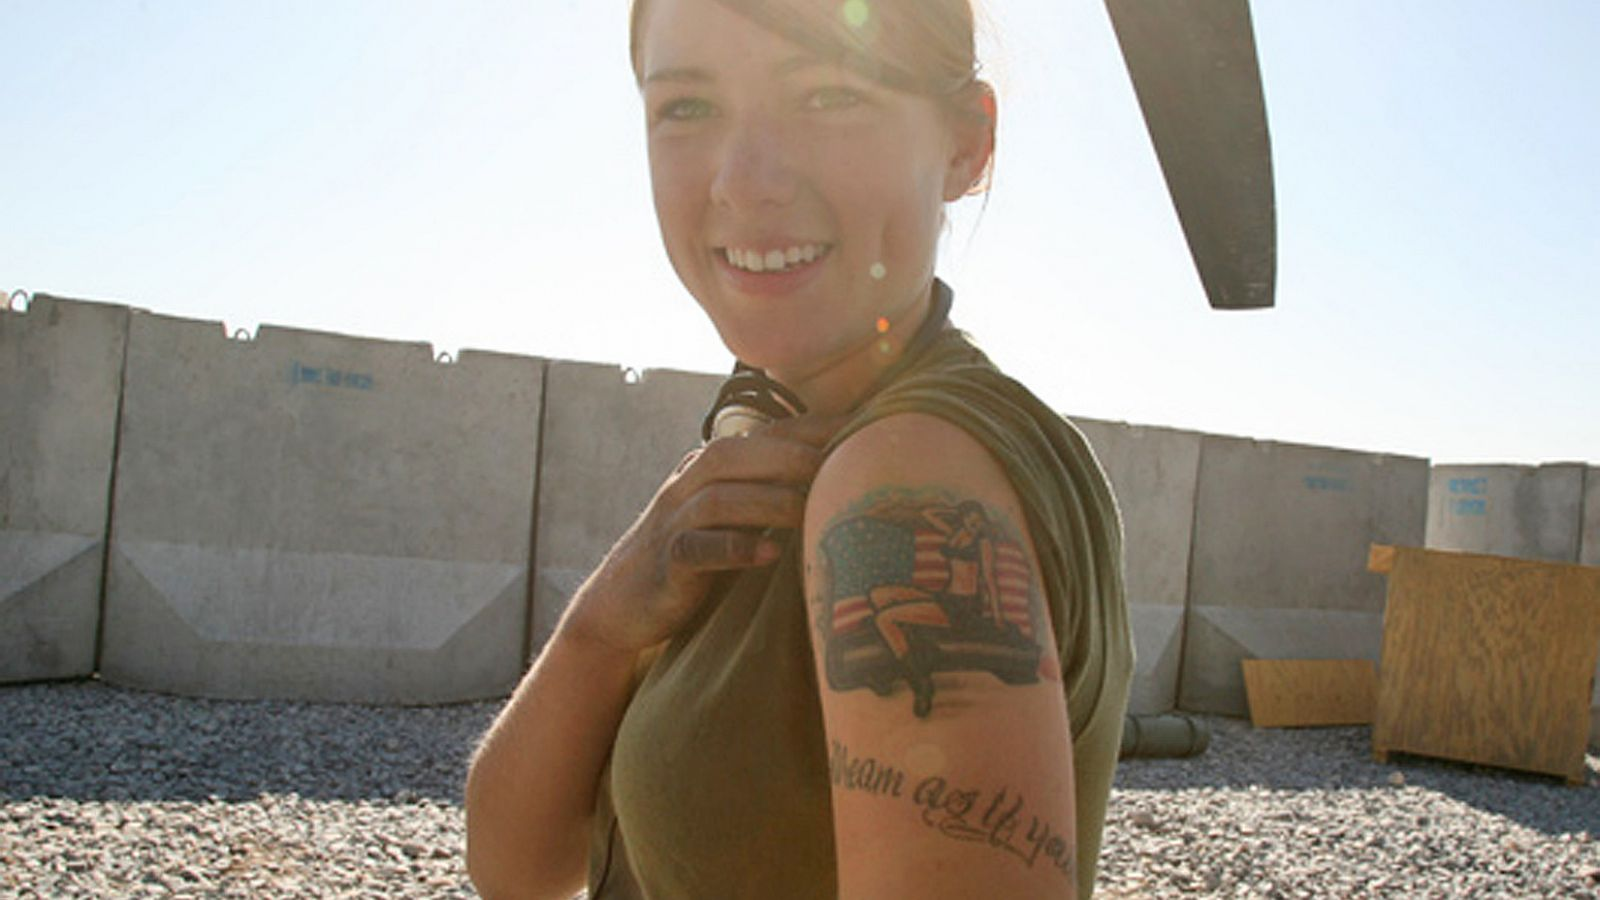 Us Army Set To Implement New Tattoo Rules Abc News